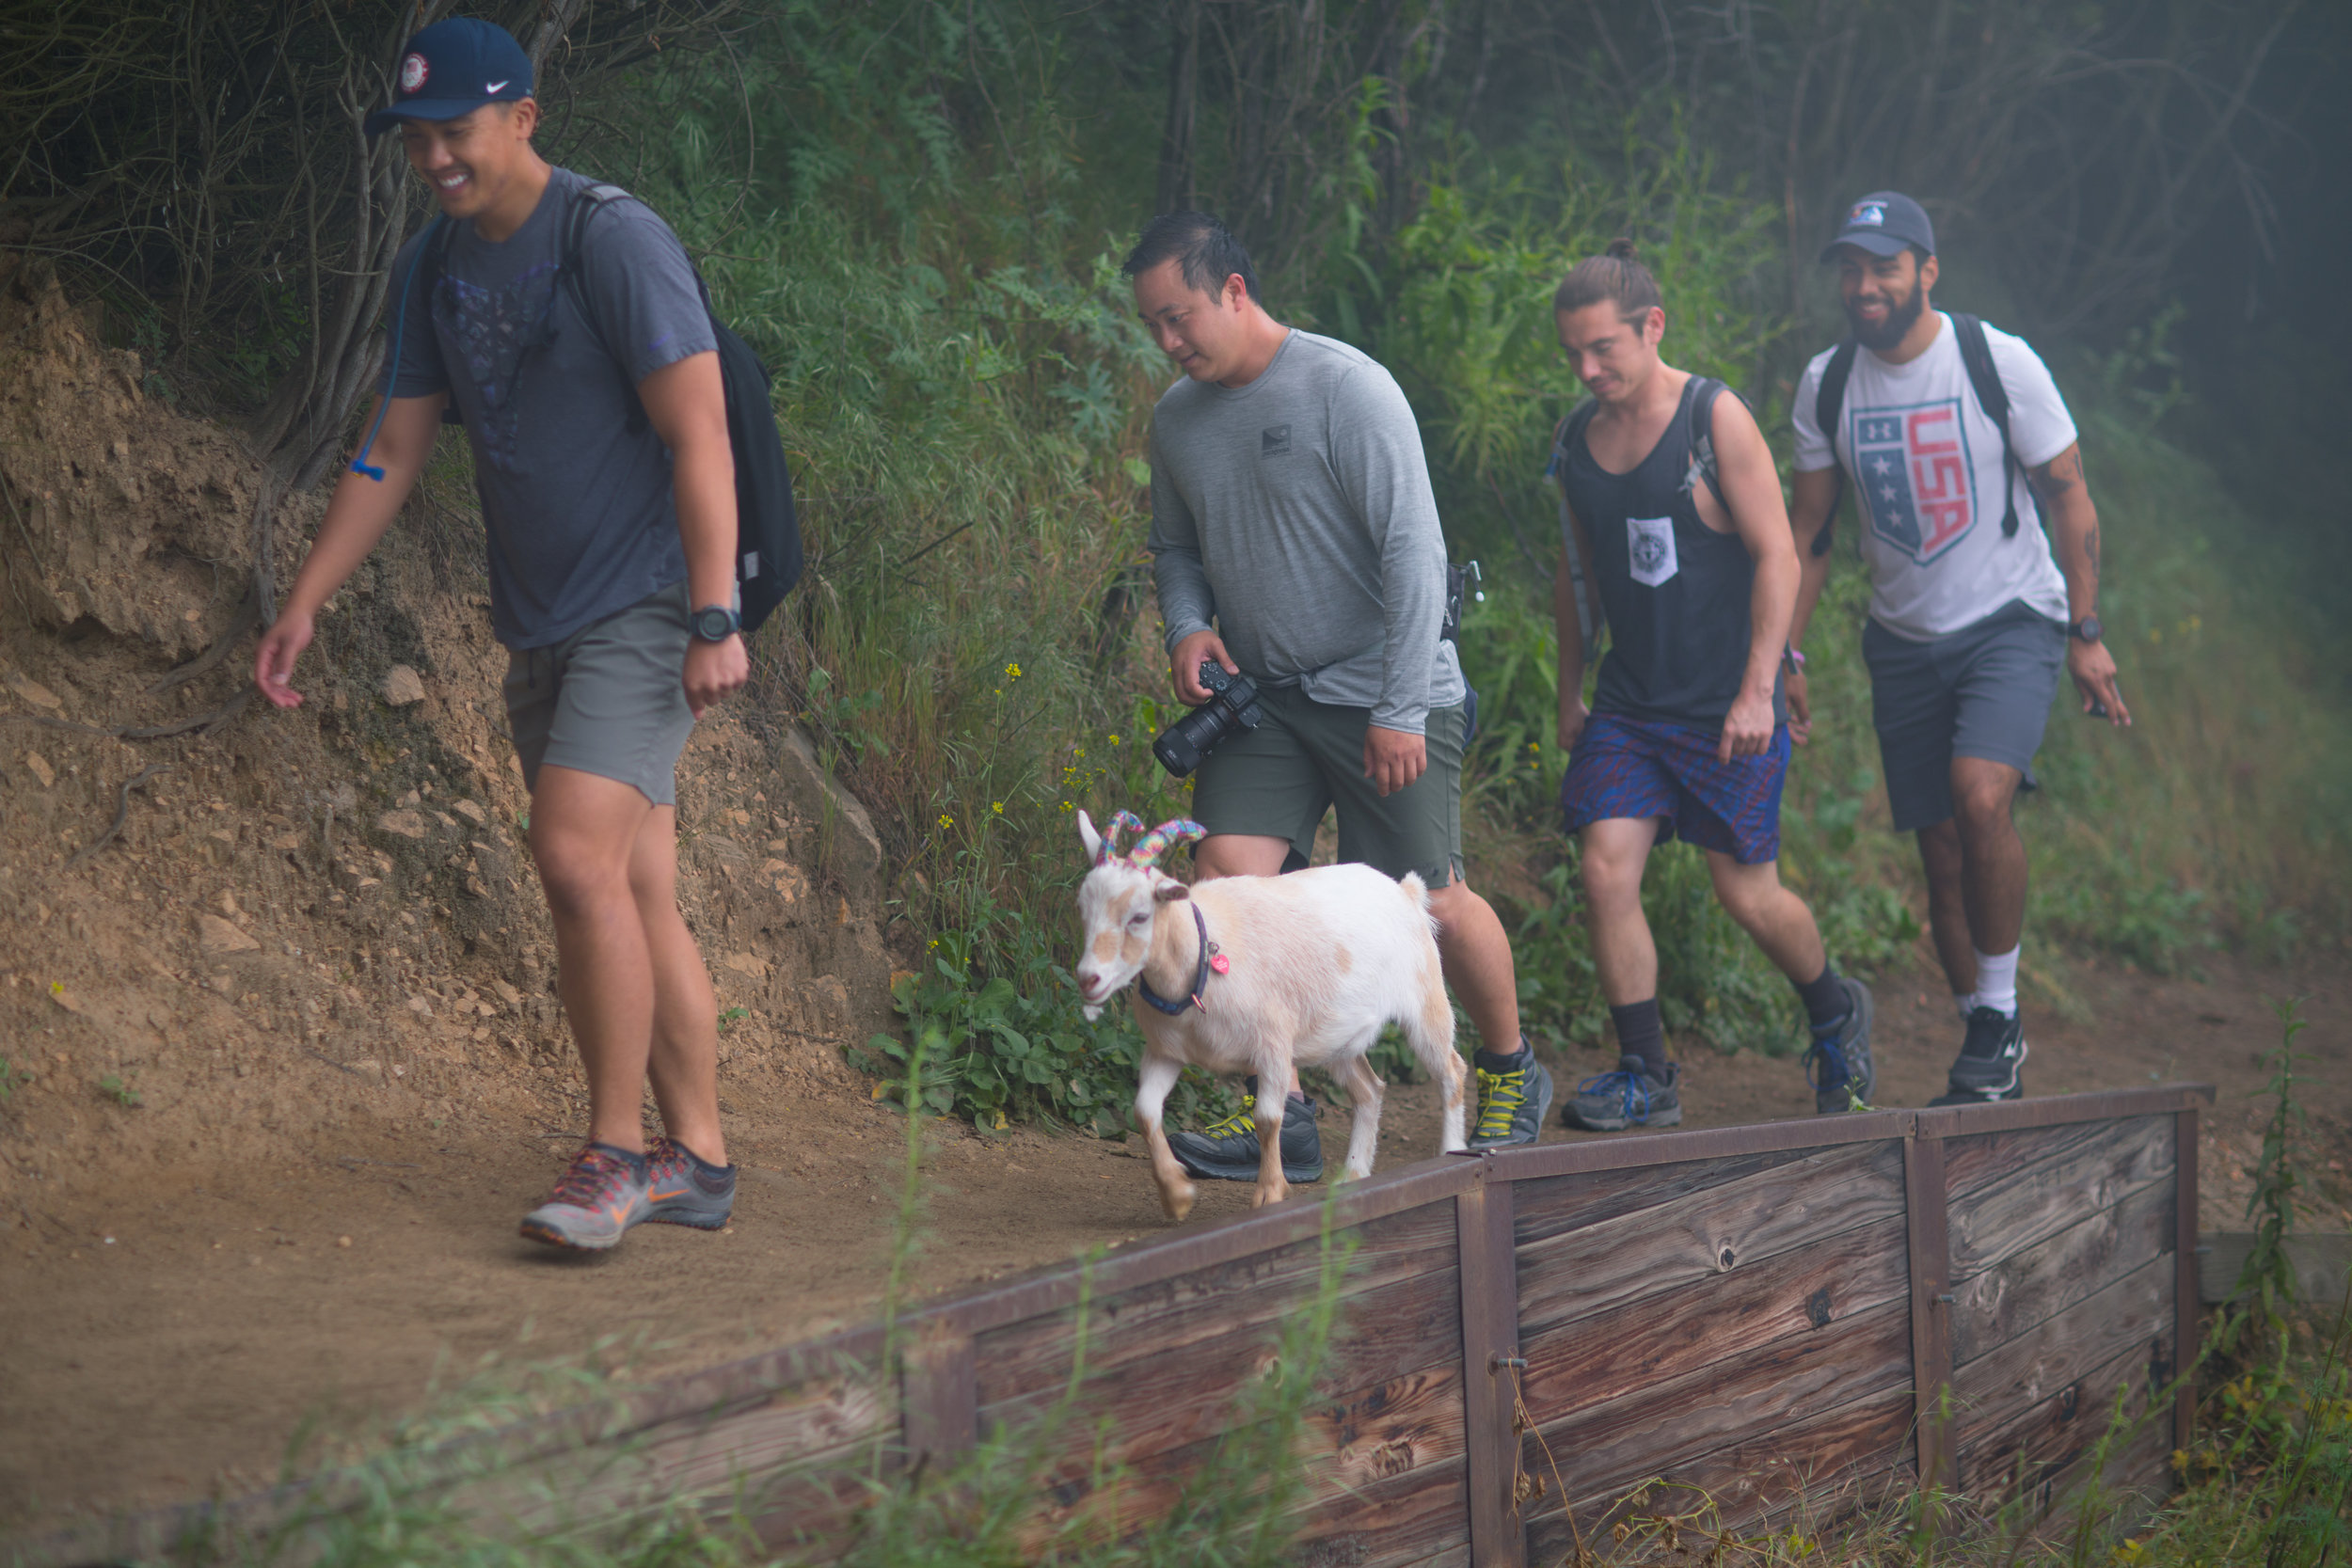 Hiking-with-PartyGoats-013.jpg